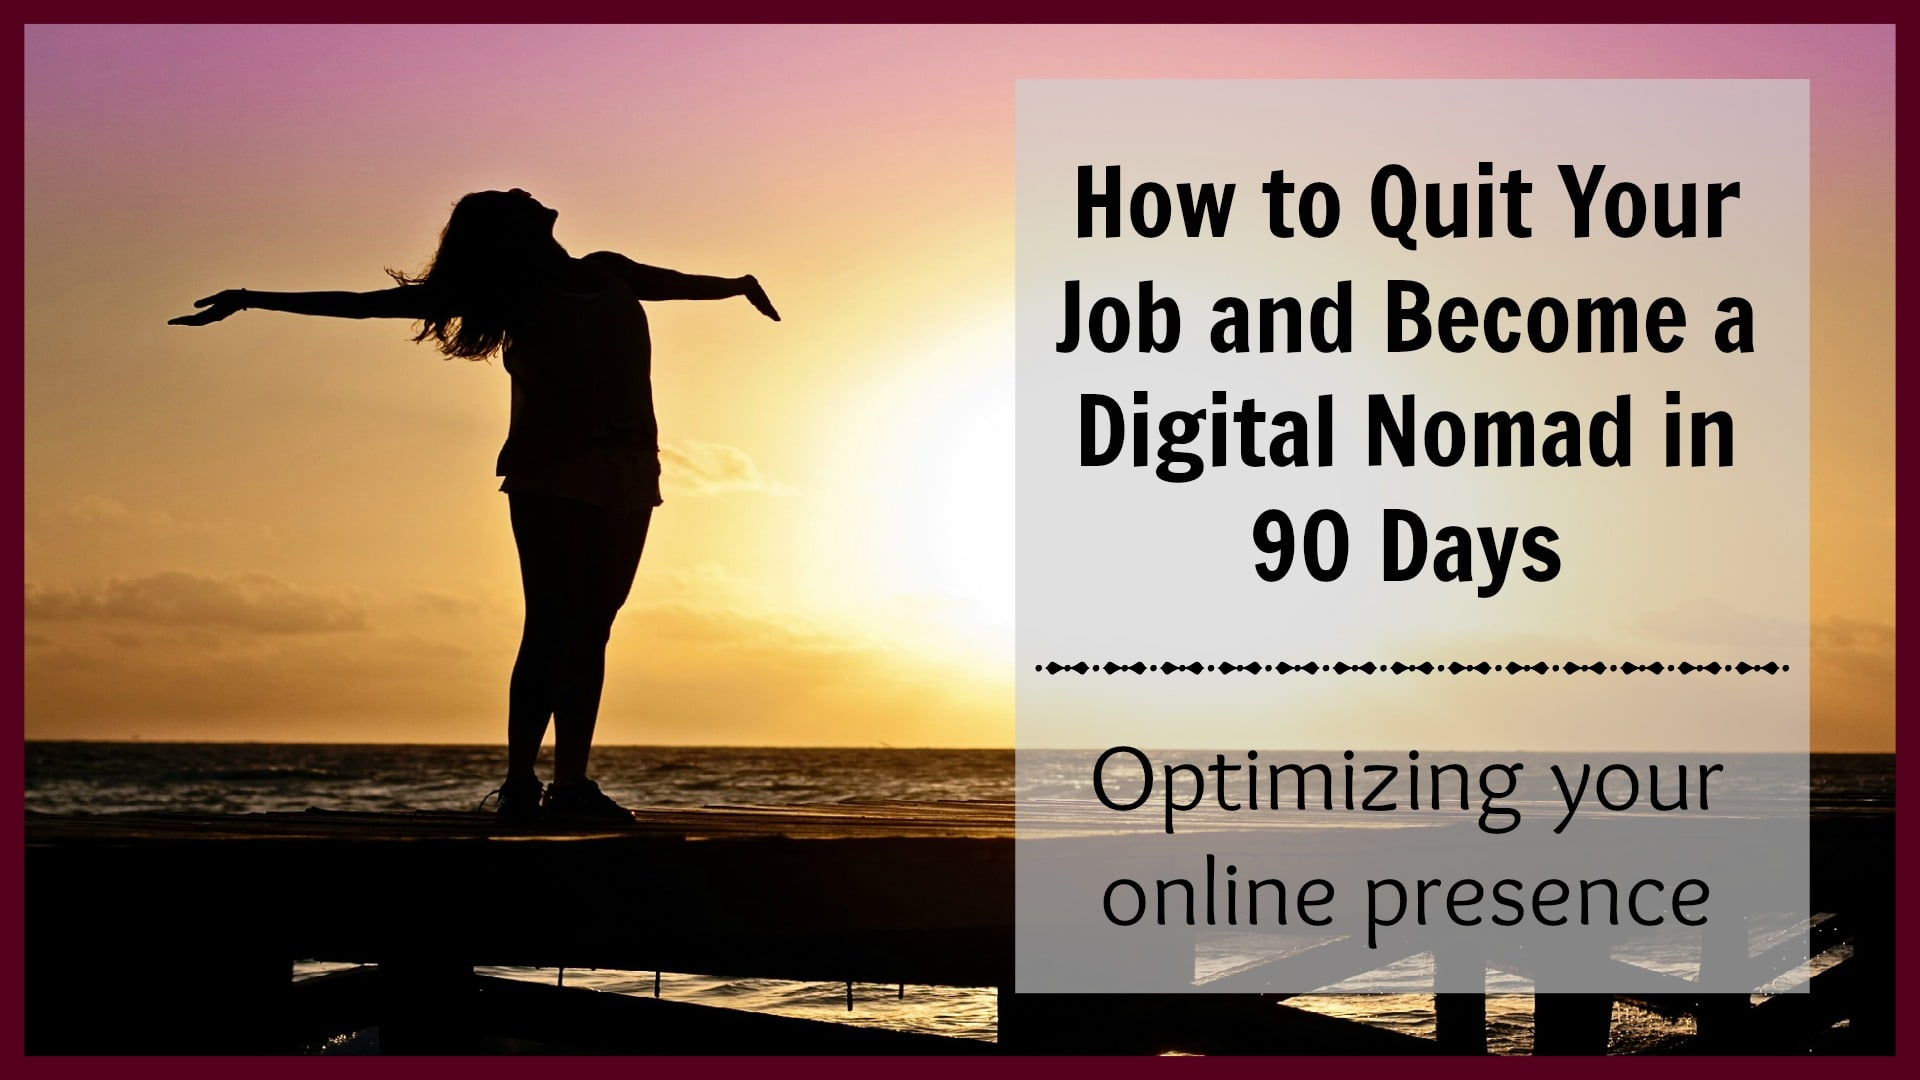 MN-How to Quit Your Job and Become a Digital Nomad in 90 Days Optimizing your online presence